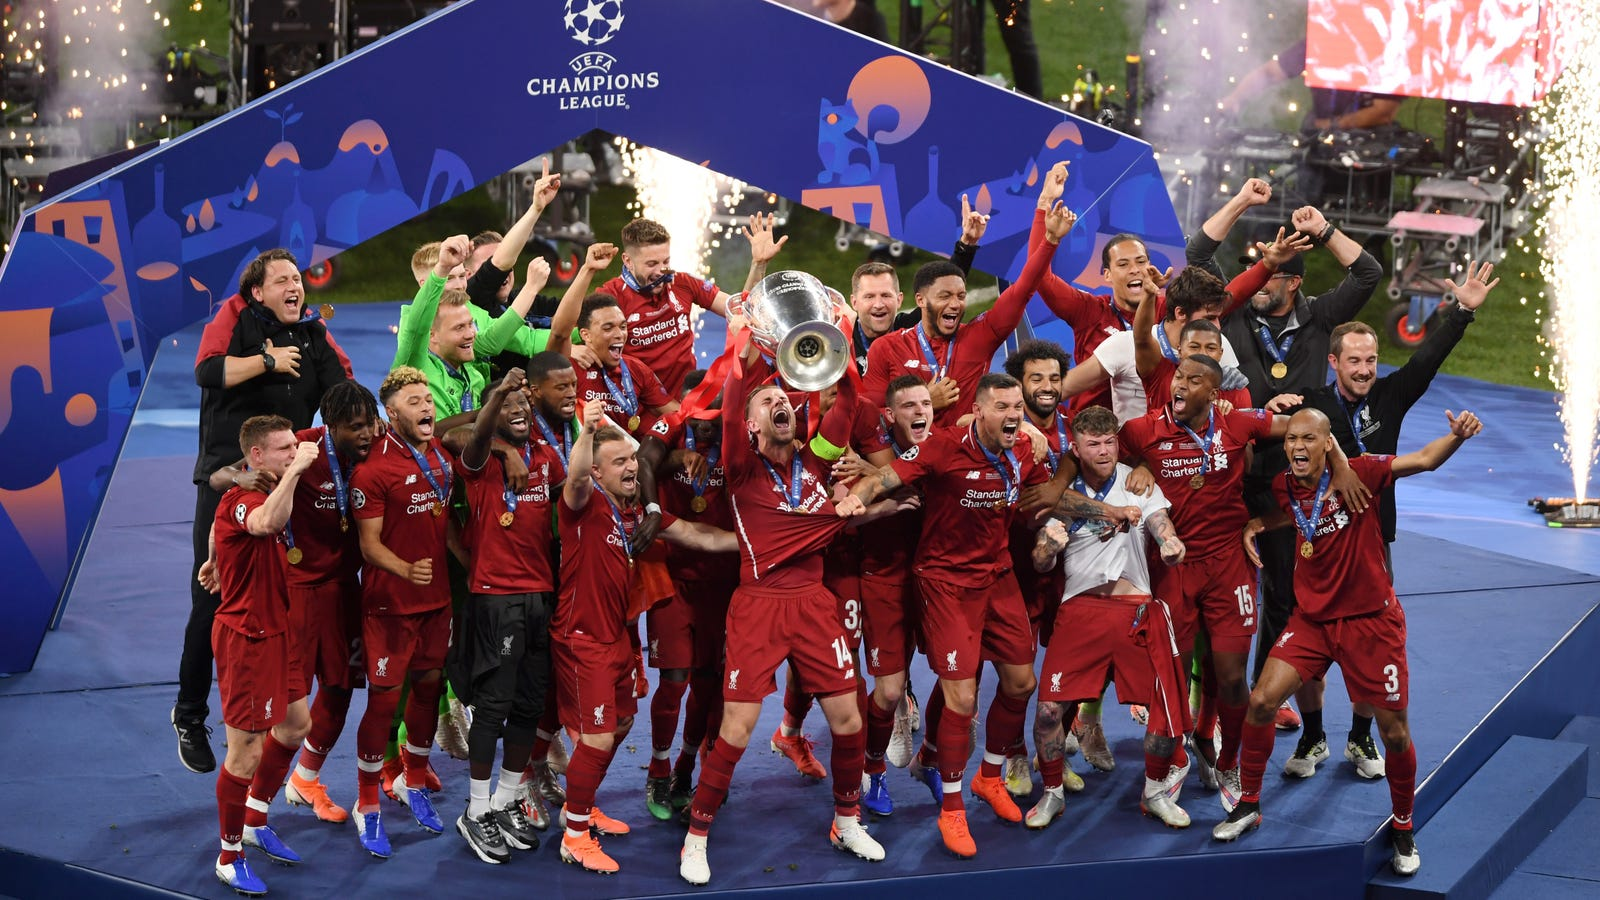 Wallpaper Victory Day Russia Holidays Hd Celebrations: Liverpool Deservedly Win A Rather Dull Champions League Final